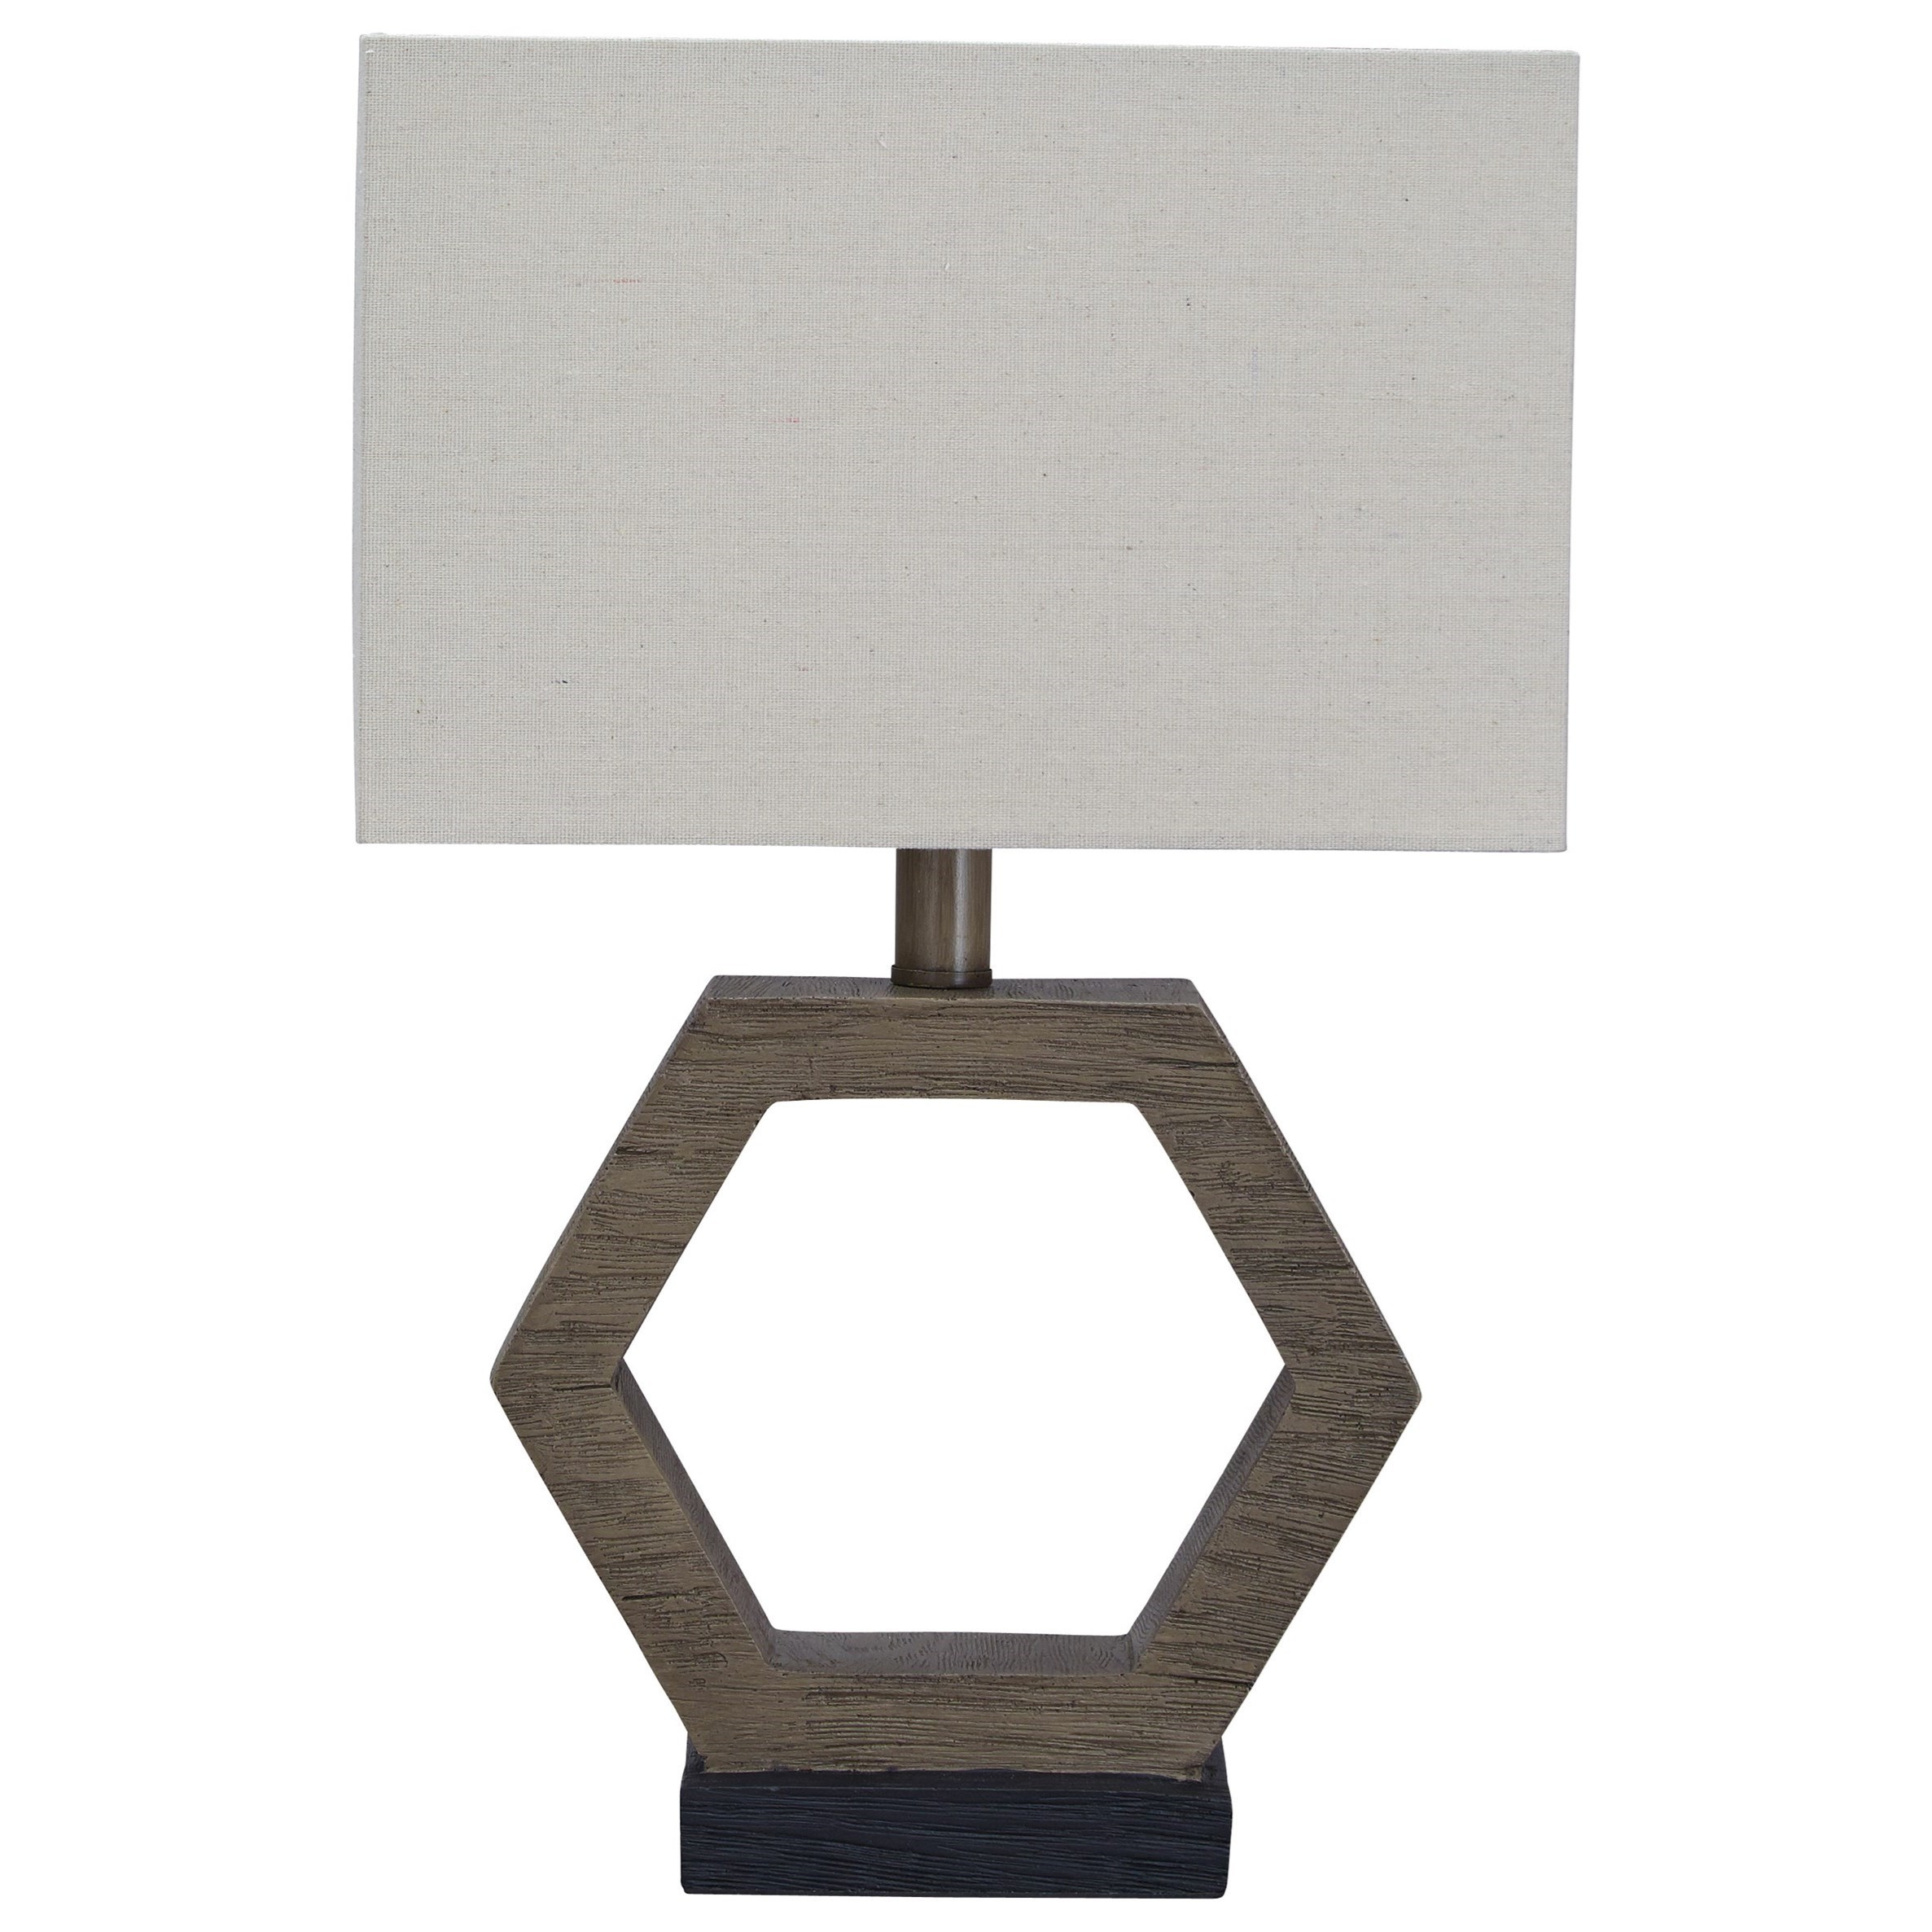 Lamps - Contemporary Marilu Faux Wood Table Lamp by Ashley (Signature Design) at Johnny Janosik